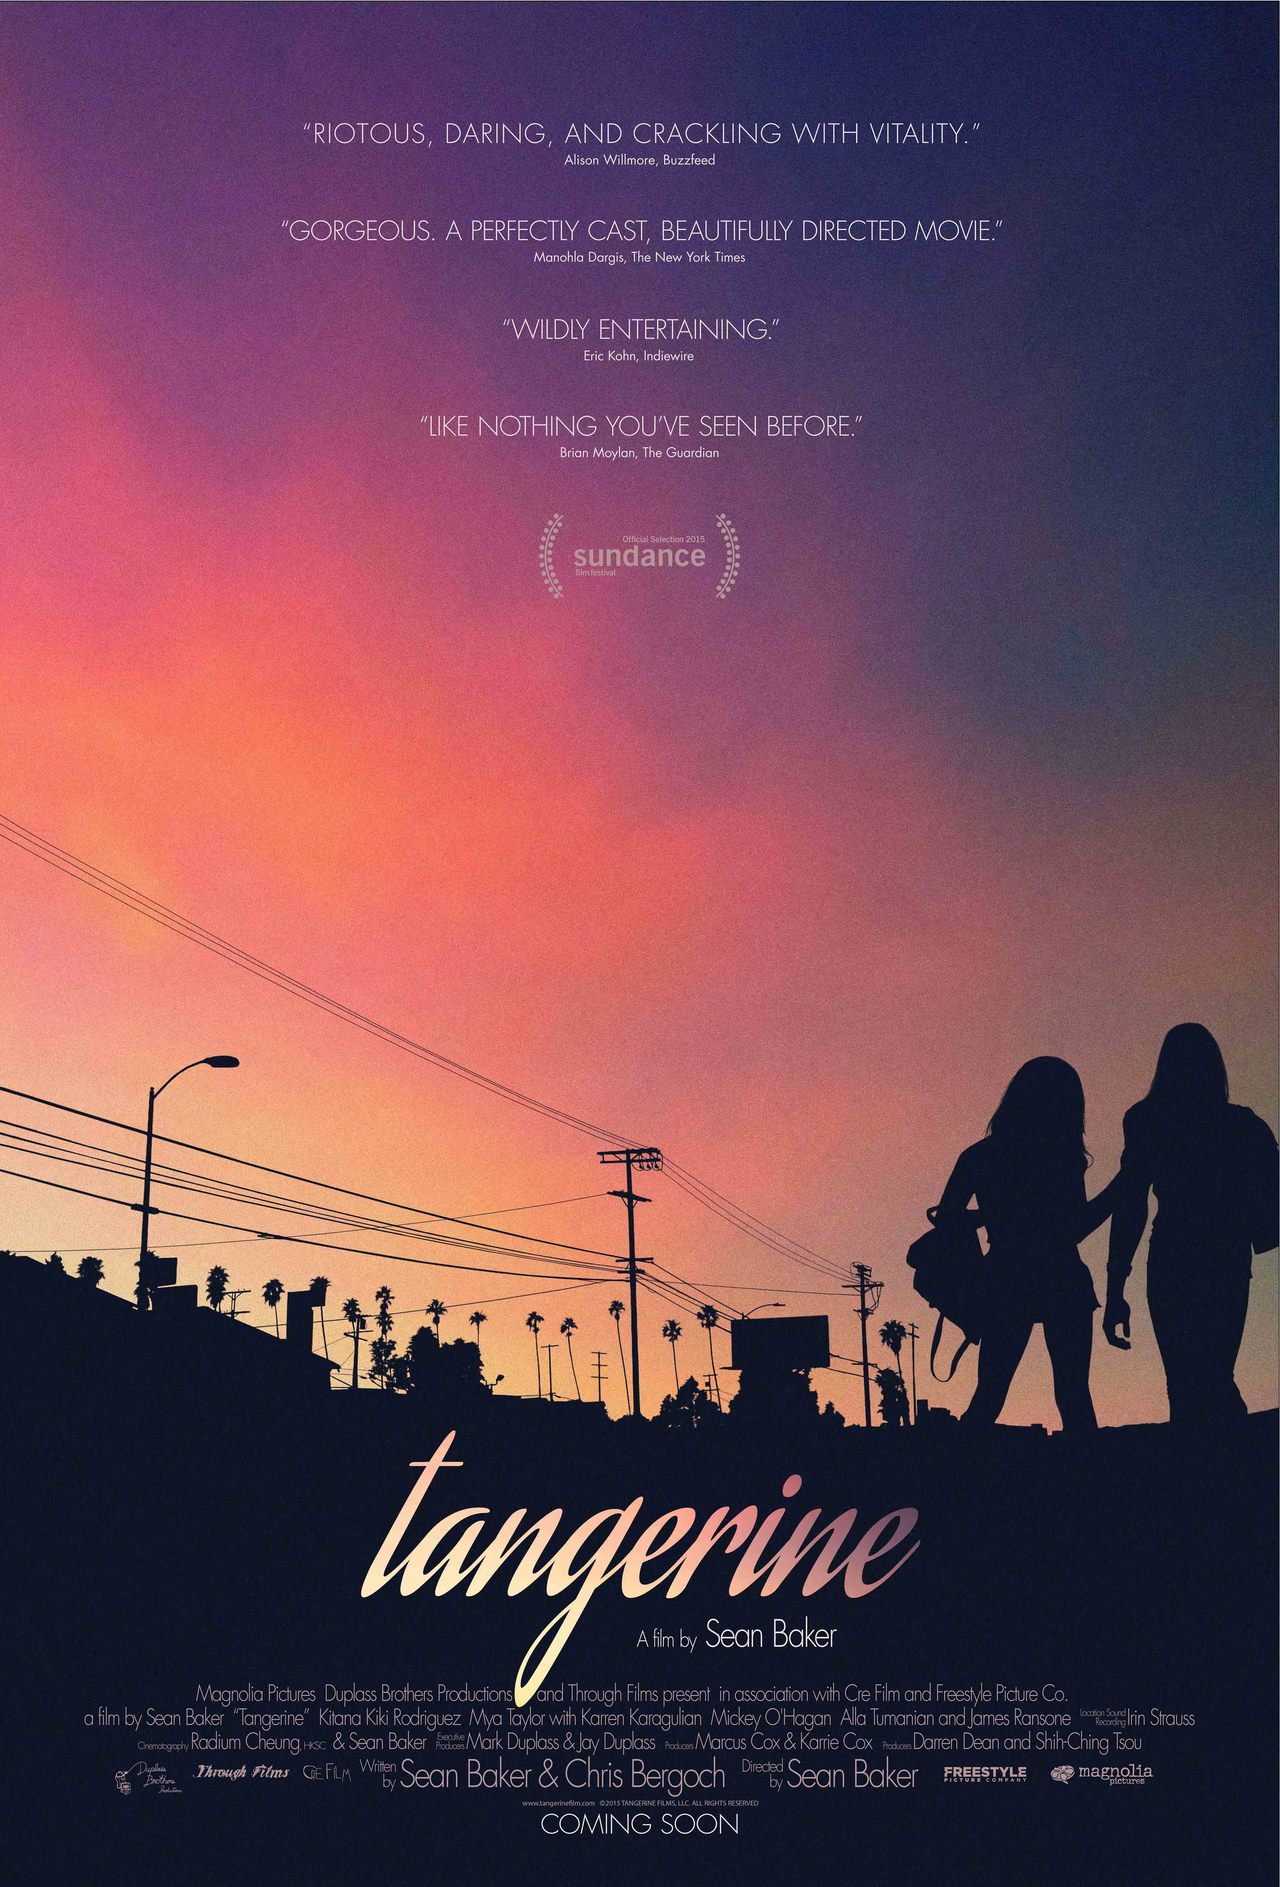 The official poster for TANGERINE (2015)